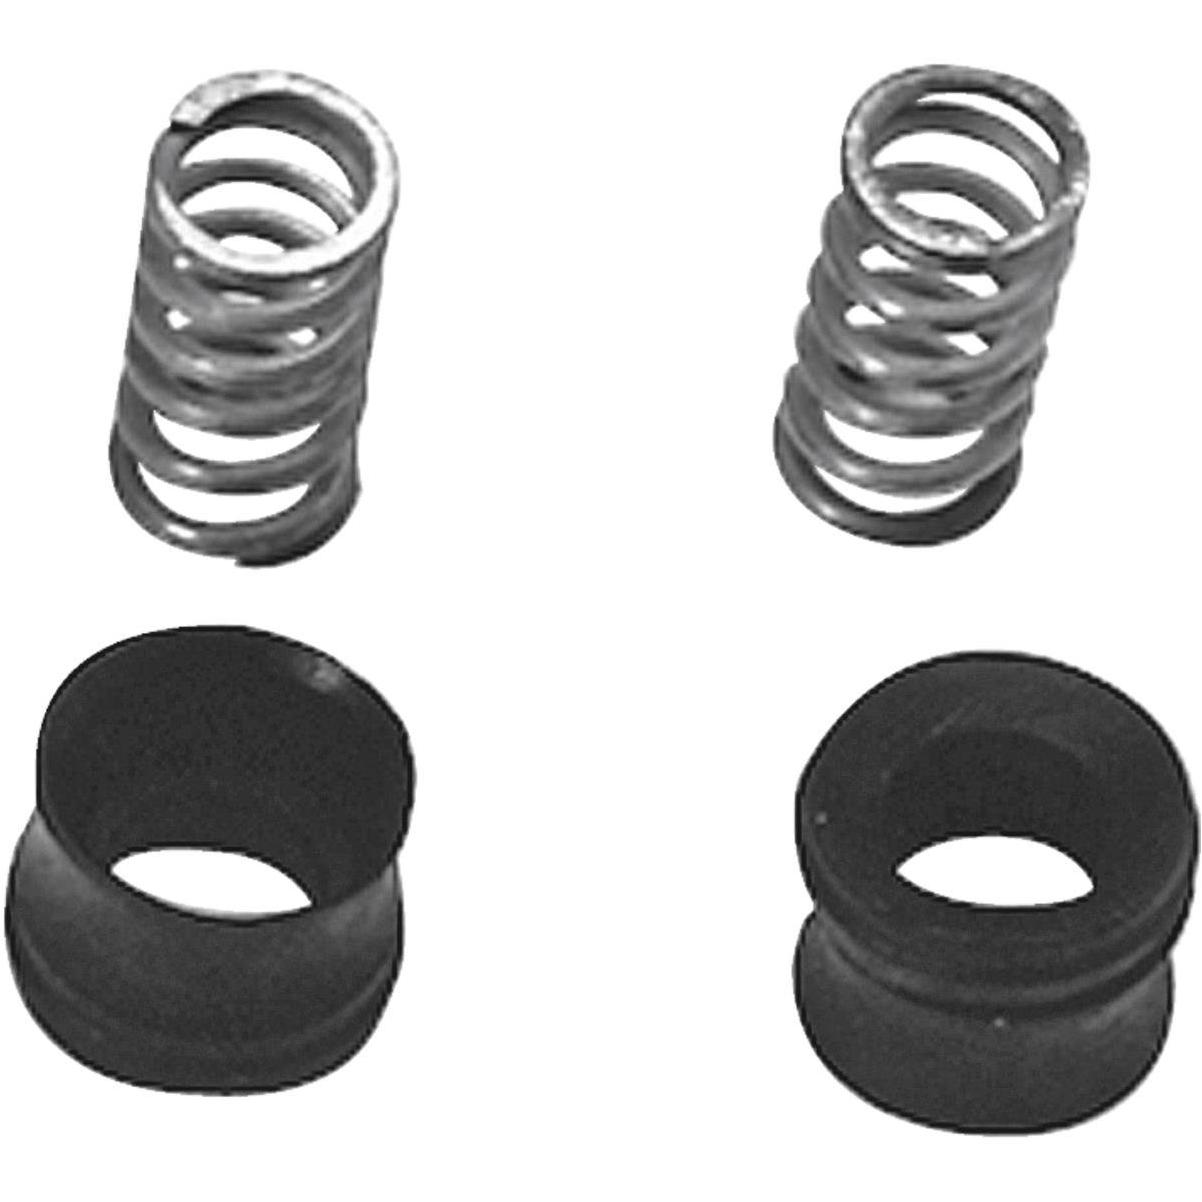 danco old style seats and springs for delta single handle faucet repair kit